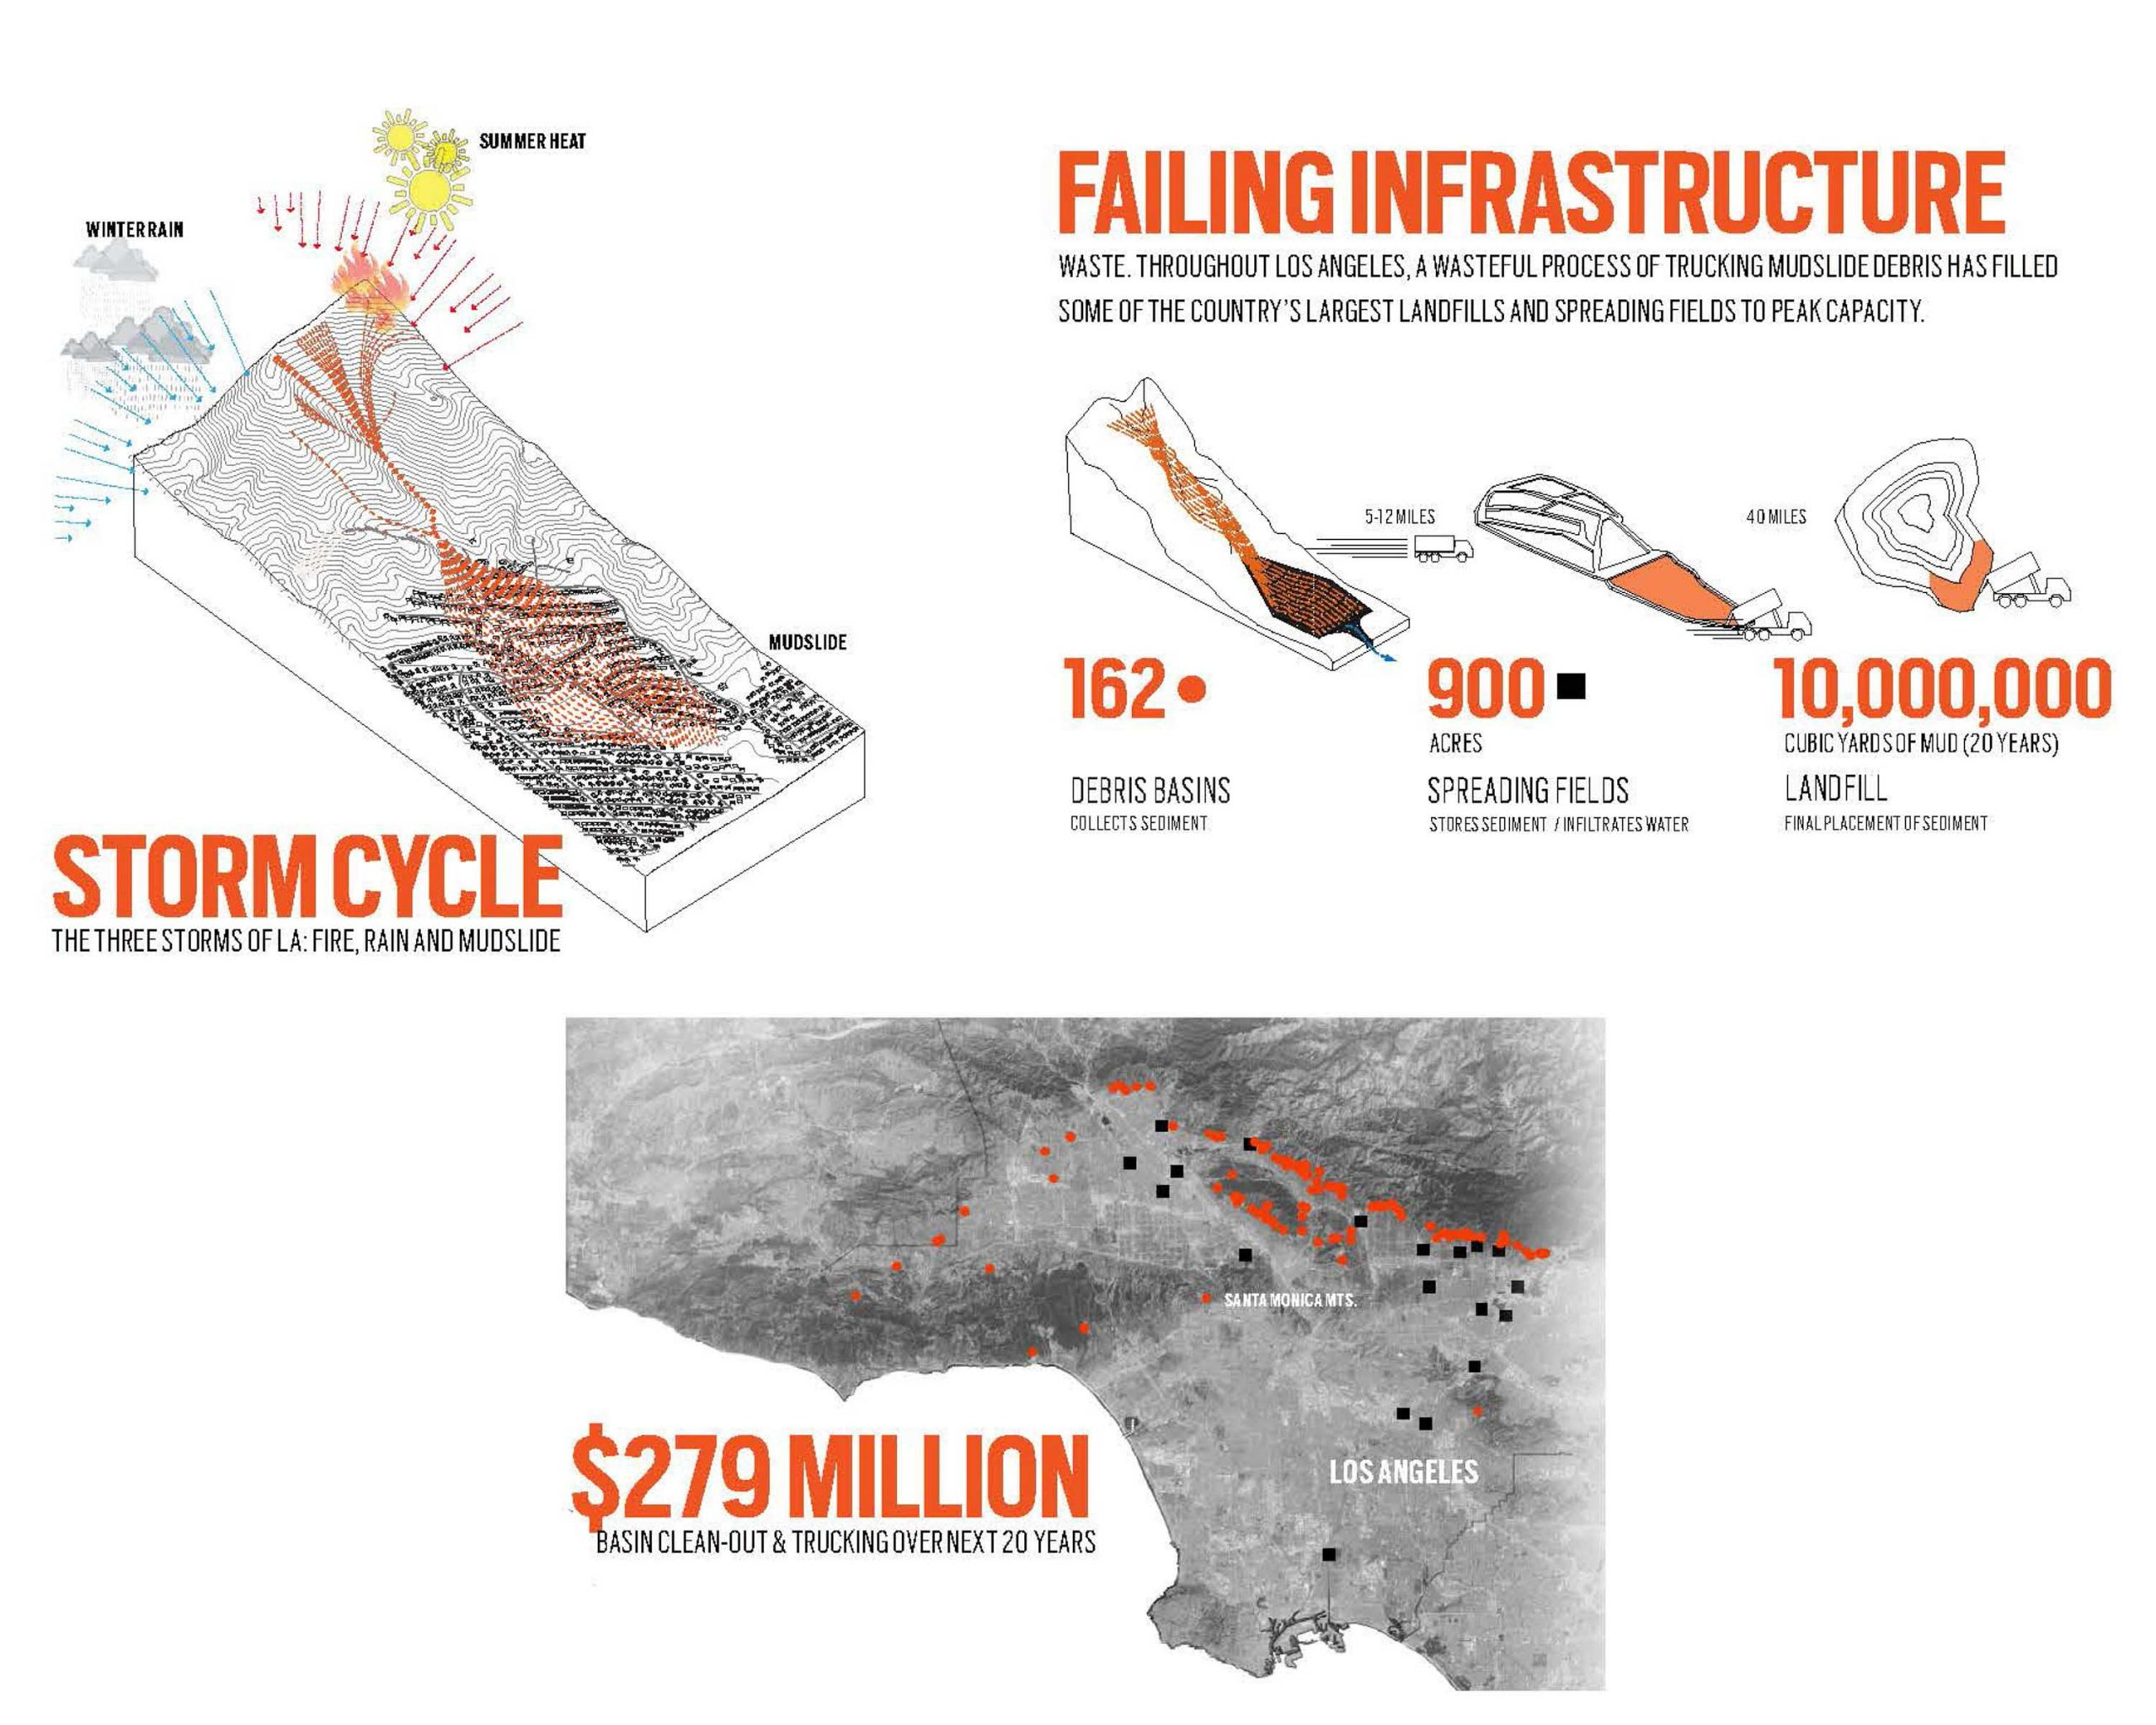 three research areas: Storm cycles, failing infrastructure, projecting financial costs